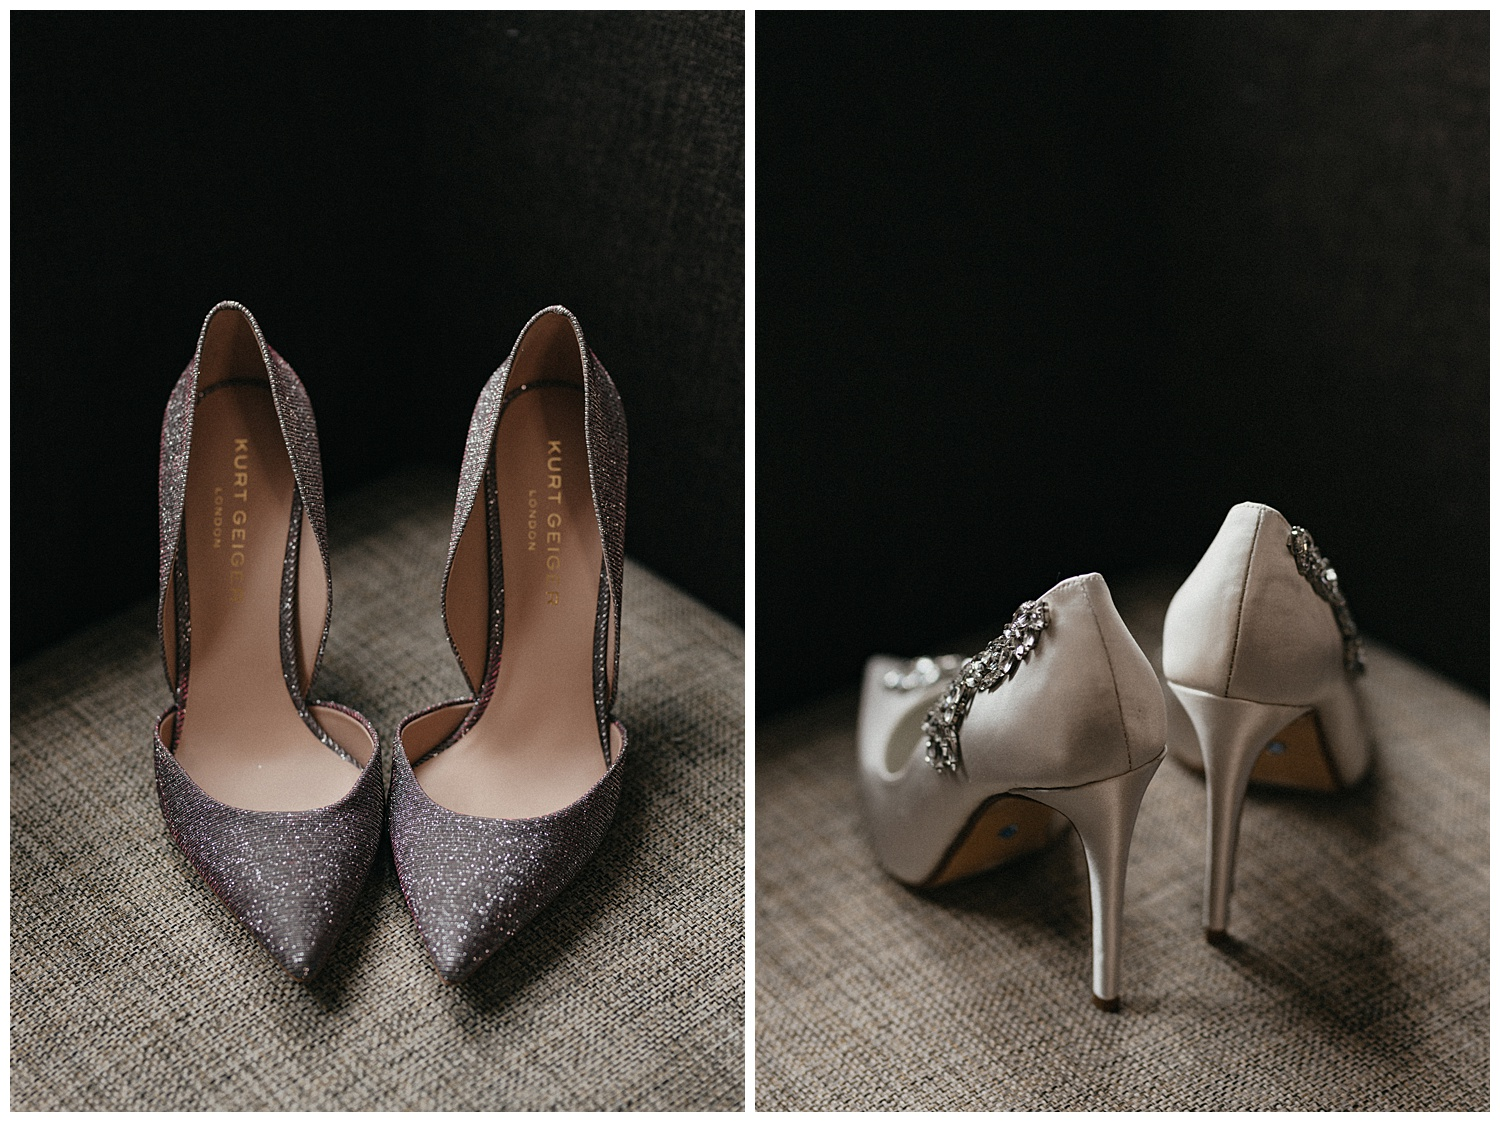 Image of wedding shoes on a chair